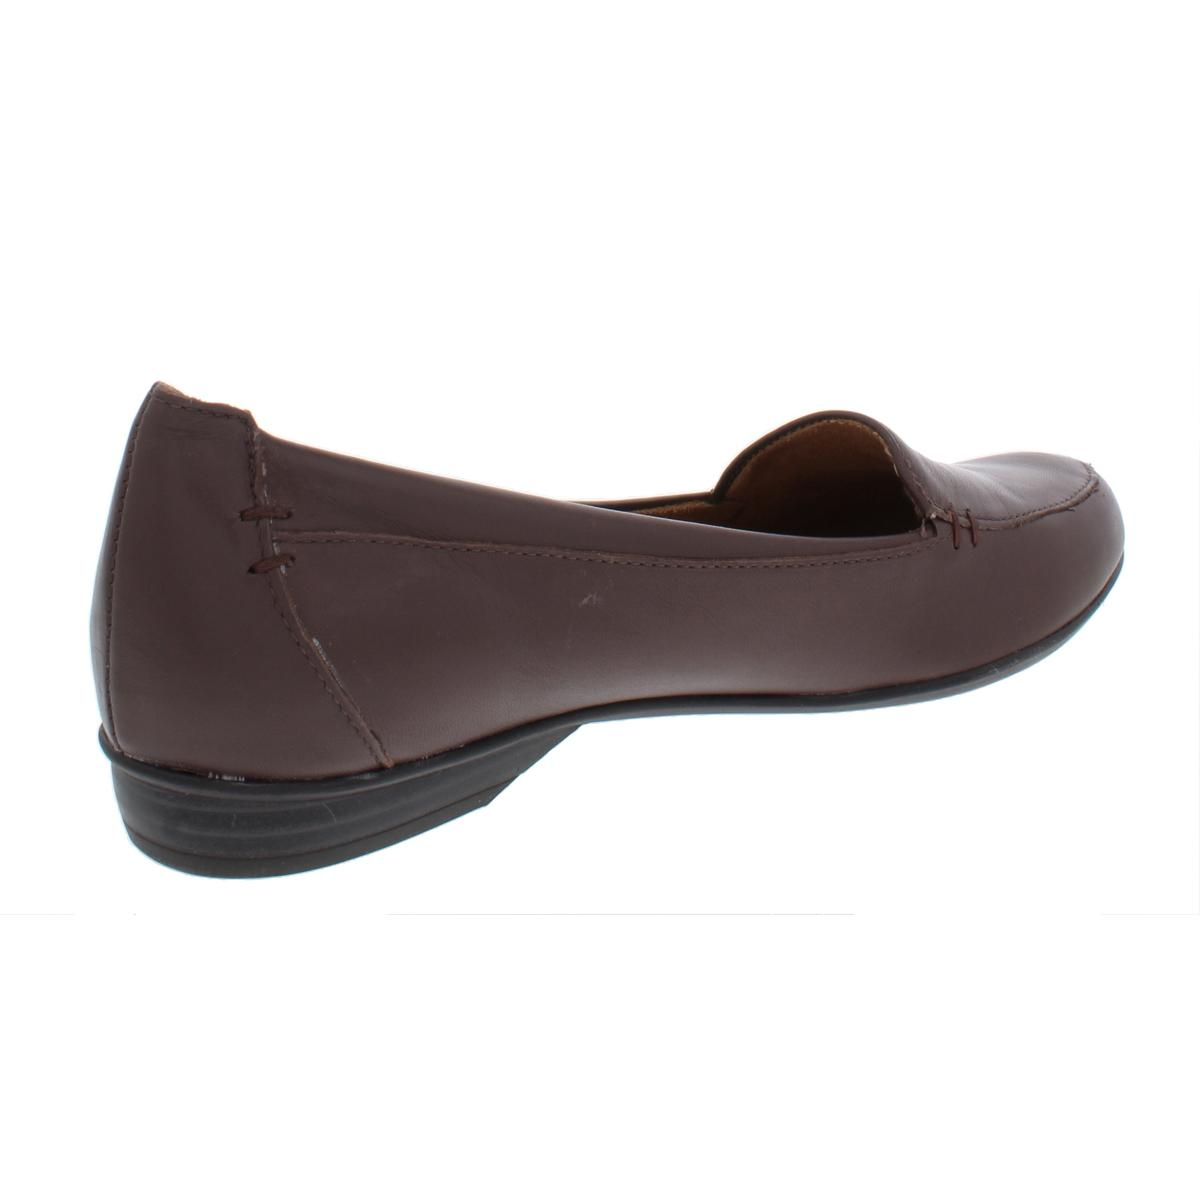 Naturalizer-Womens-Saban-Solid-Round-Toe-Casual-Loafers-Shoes-BHFO-1181 thumbnail 6